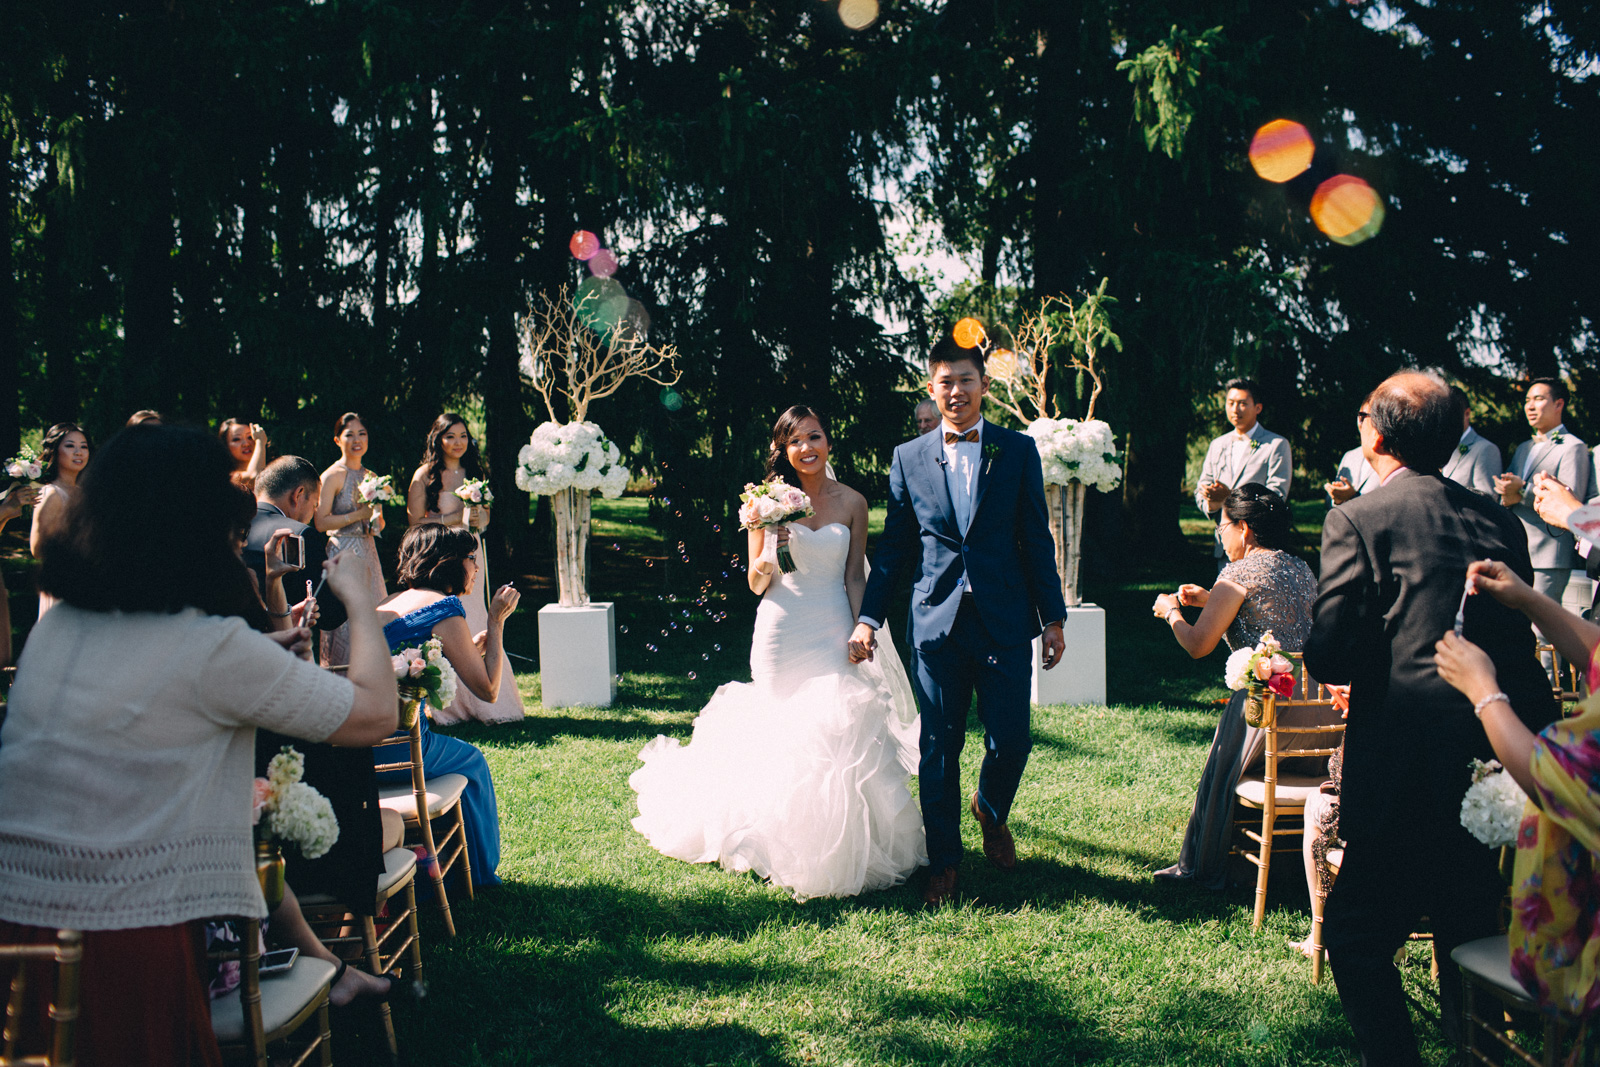 cambium-farms-wedding-photography-by-sam-wong-of-artanis-collective_38